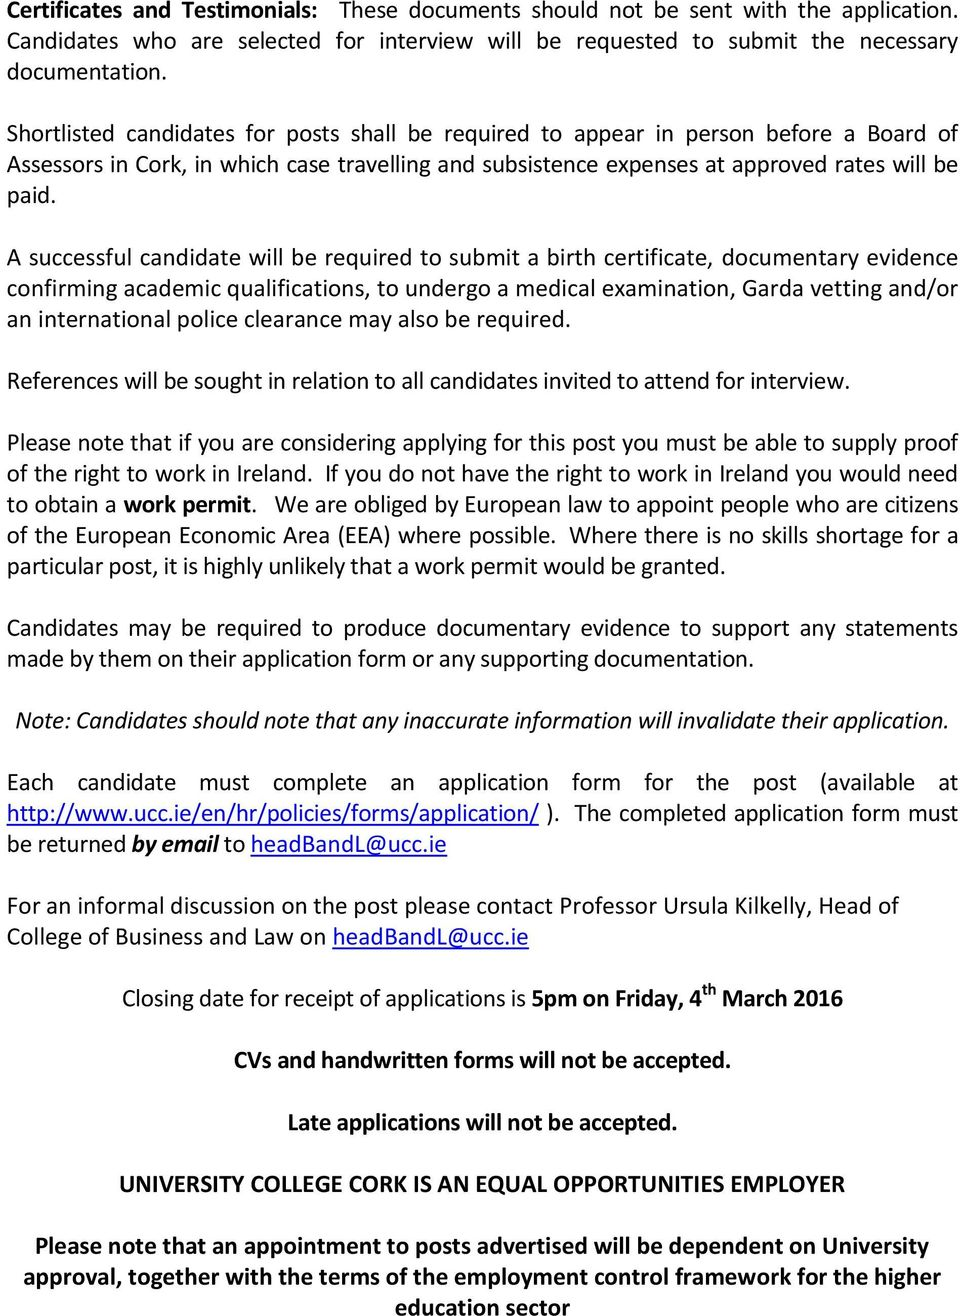 A successful candidate will be required to submit a birth certificate, documentary evidence confirming academic qualifications, to undergo a medical examination, Garda vetting and/or an international